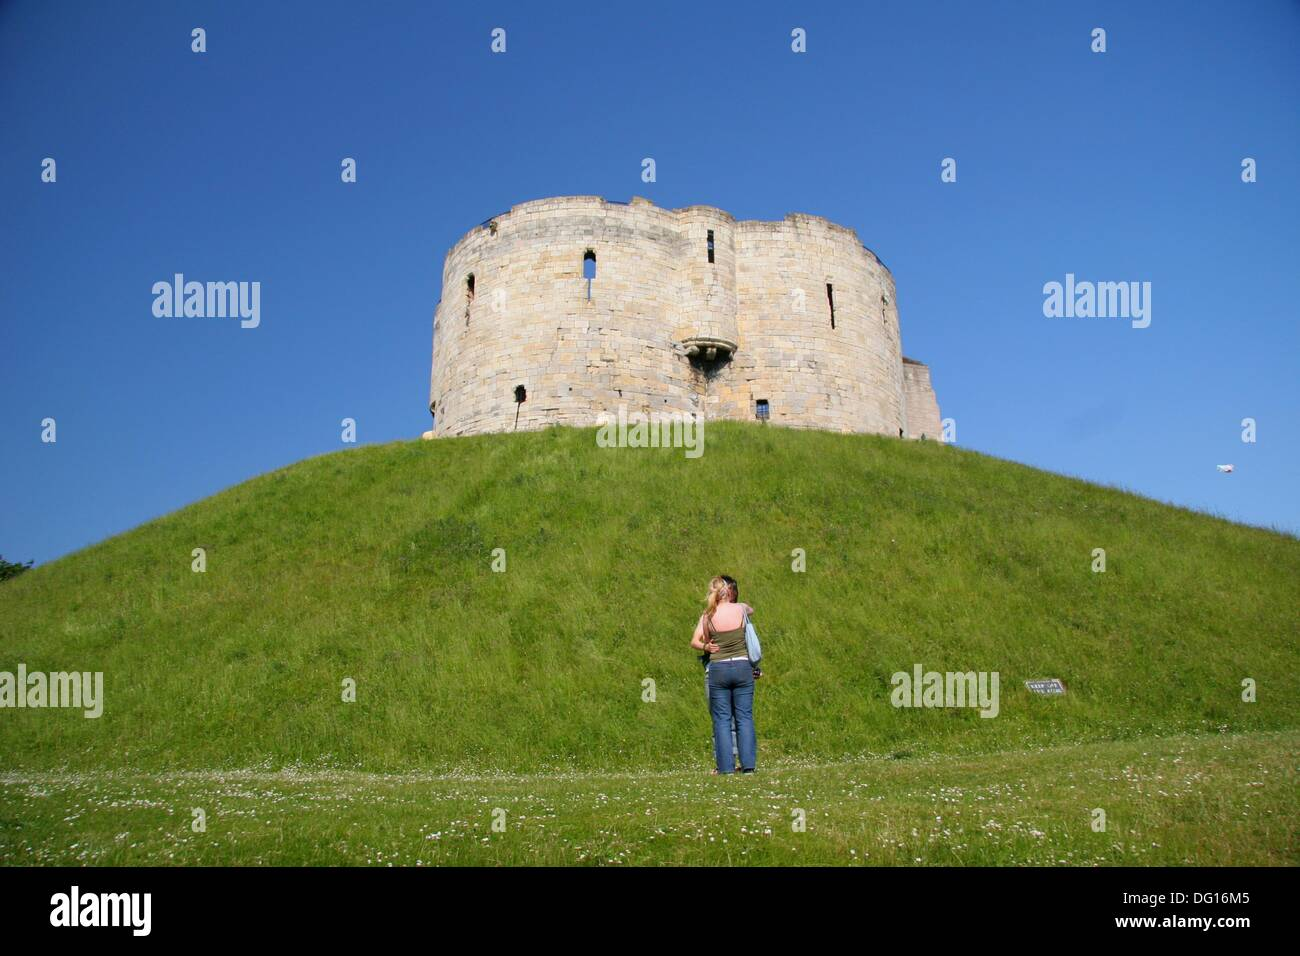 York´s clifford tower stands on a biblical site in York. On this location, rathern than surrendering to the Romans and their - Stock Image